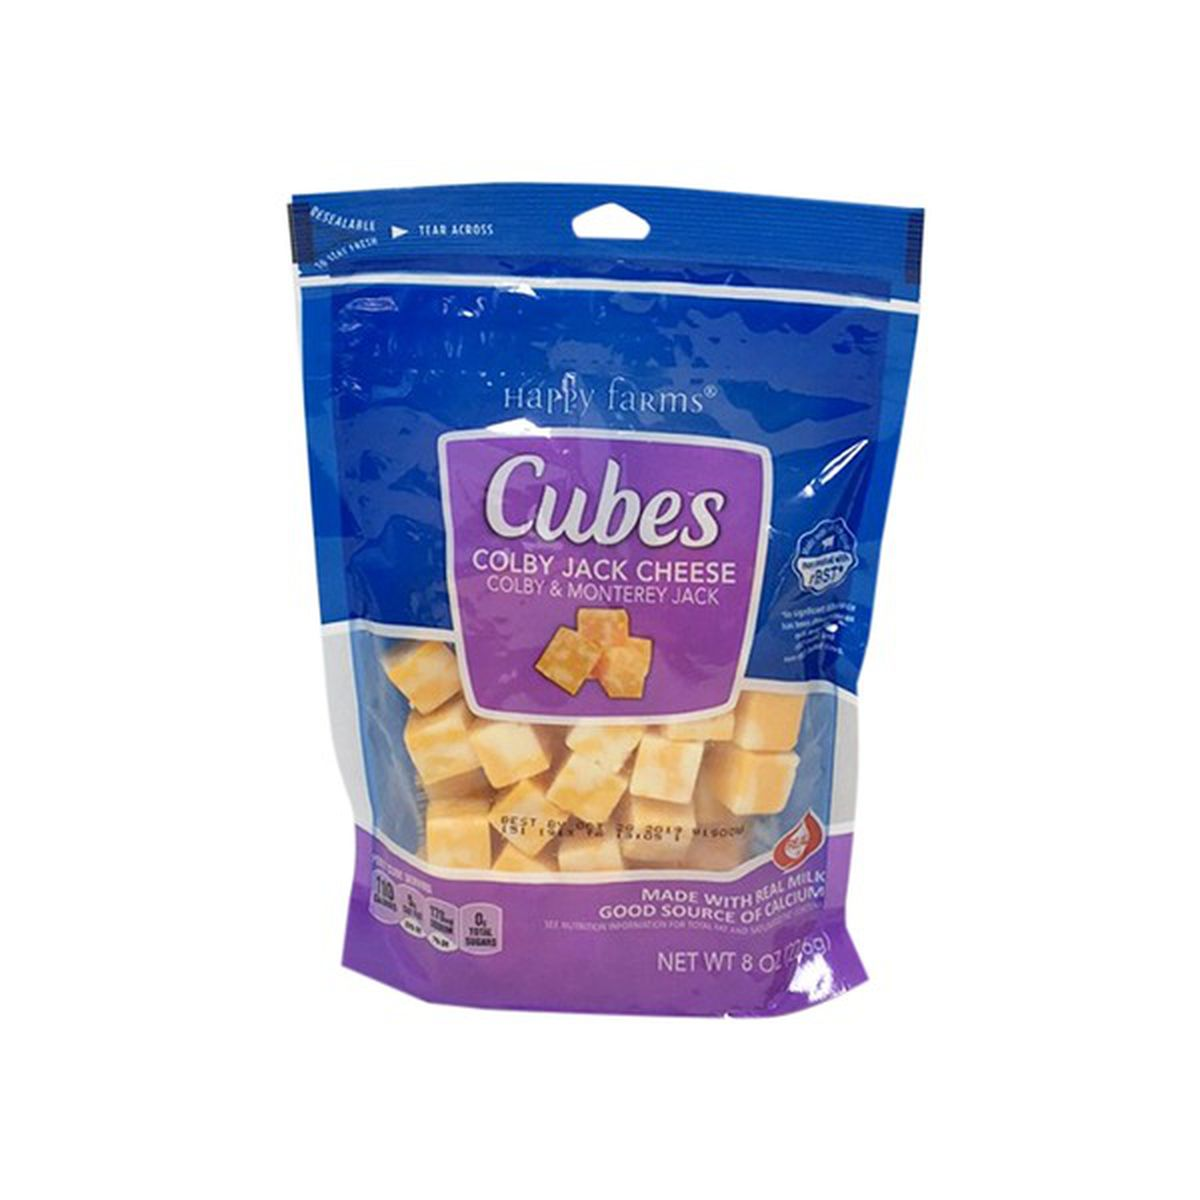 Colby Jack Cheese Cubes